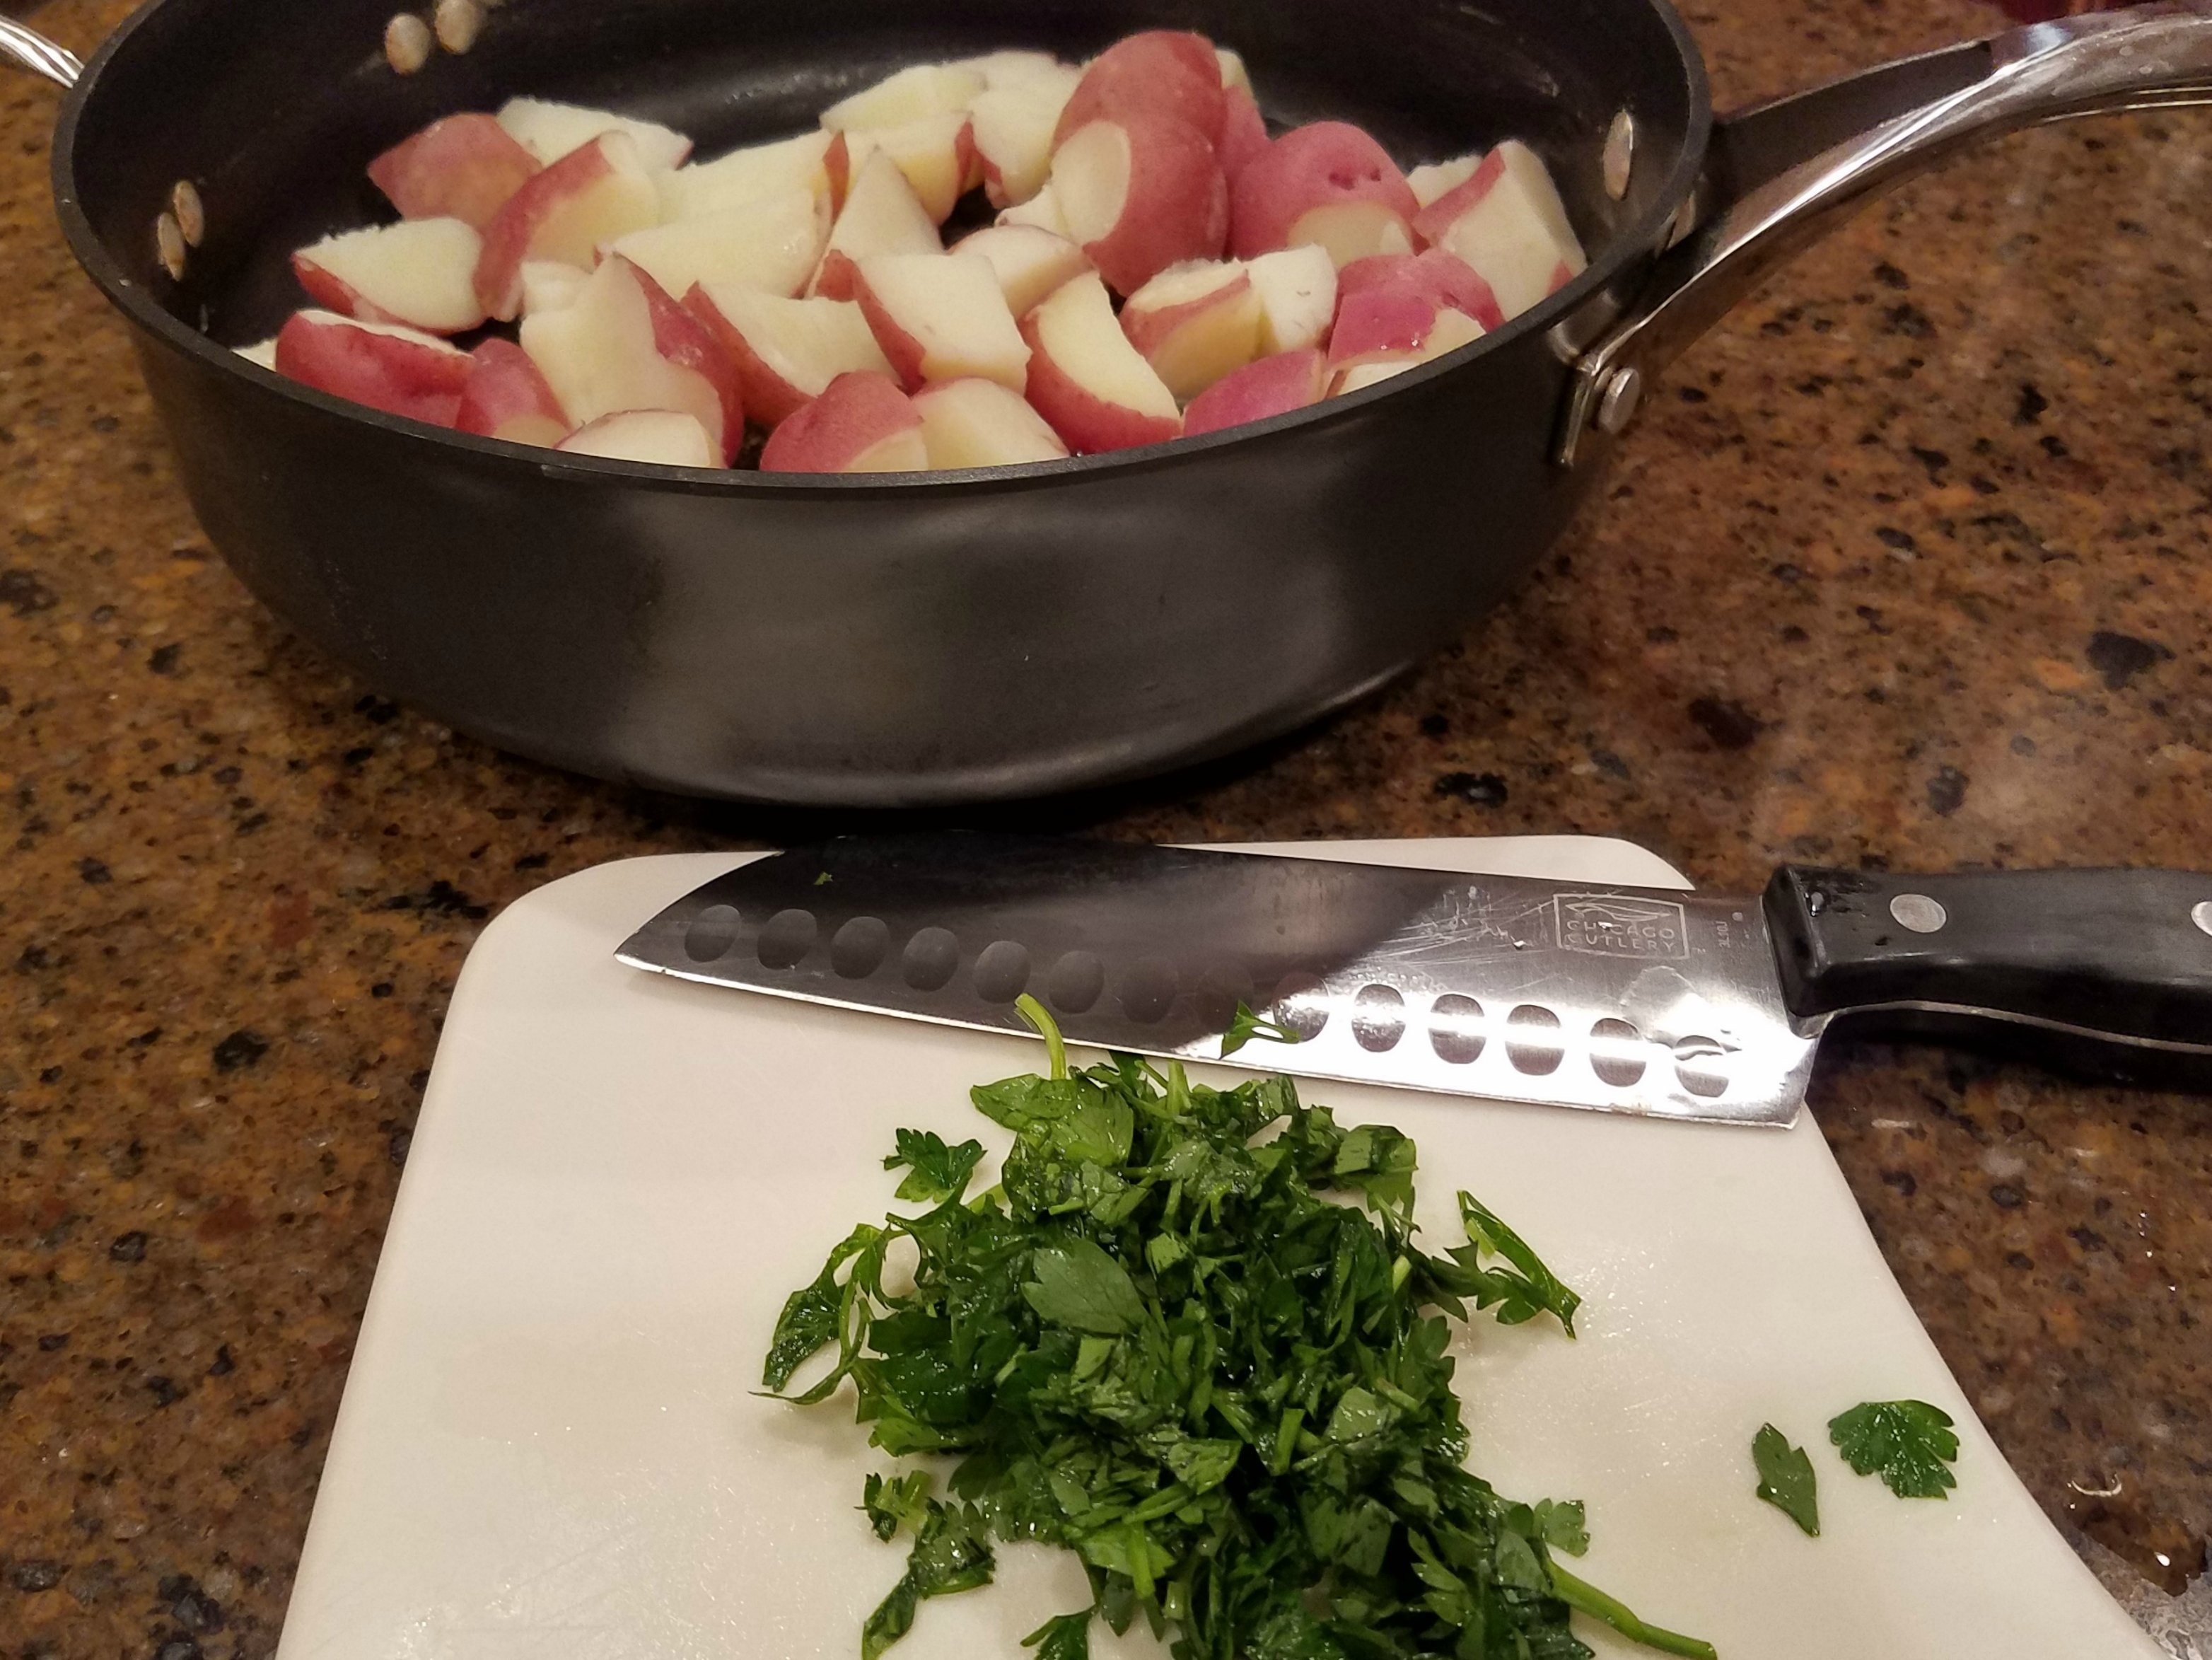 Parsley potatoes prep